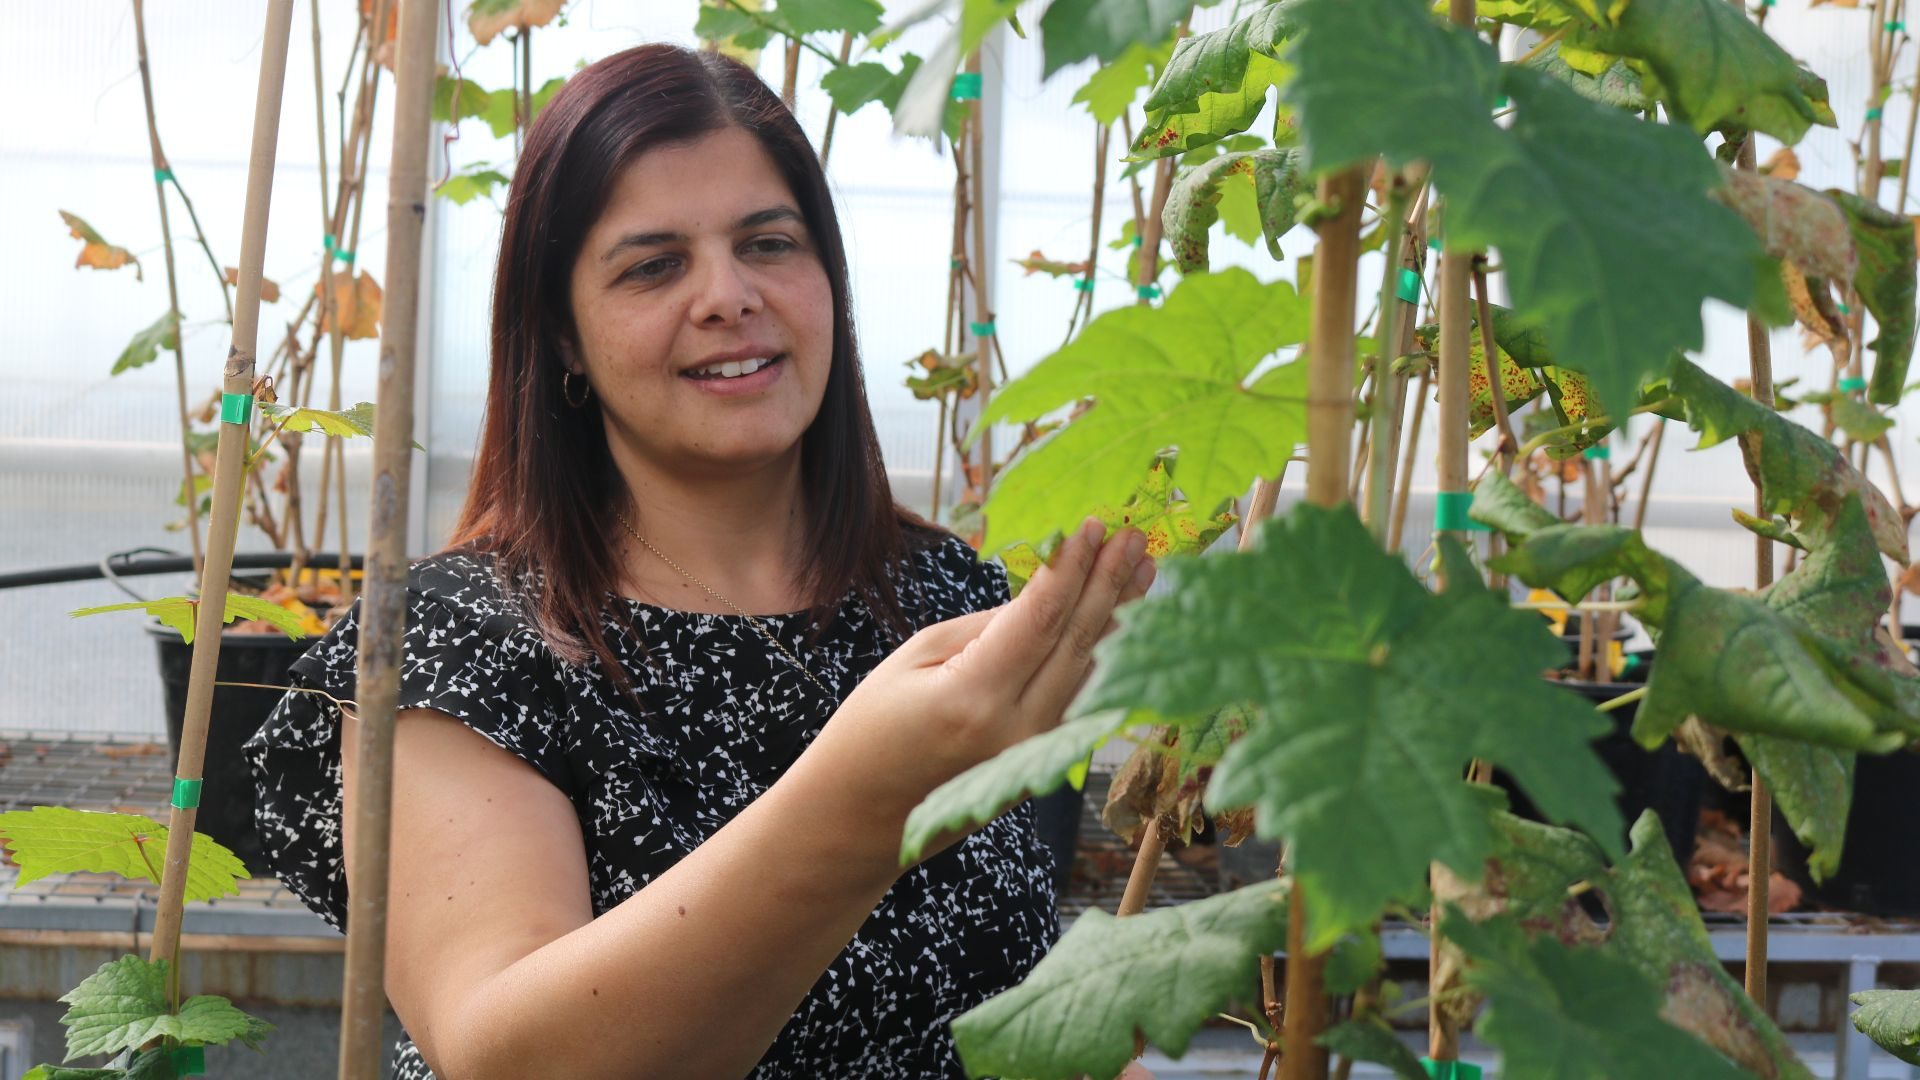 Charles Sturt researchers featured in women in science, technology and engineering publication